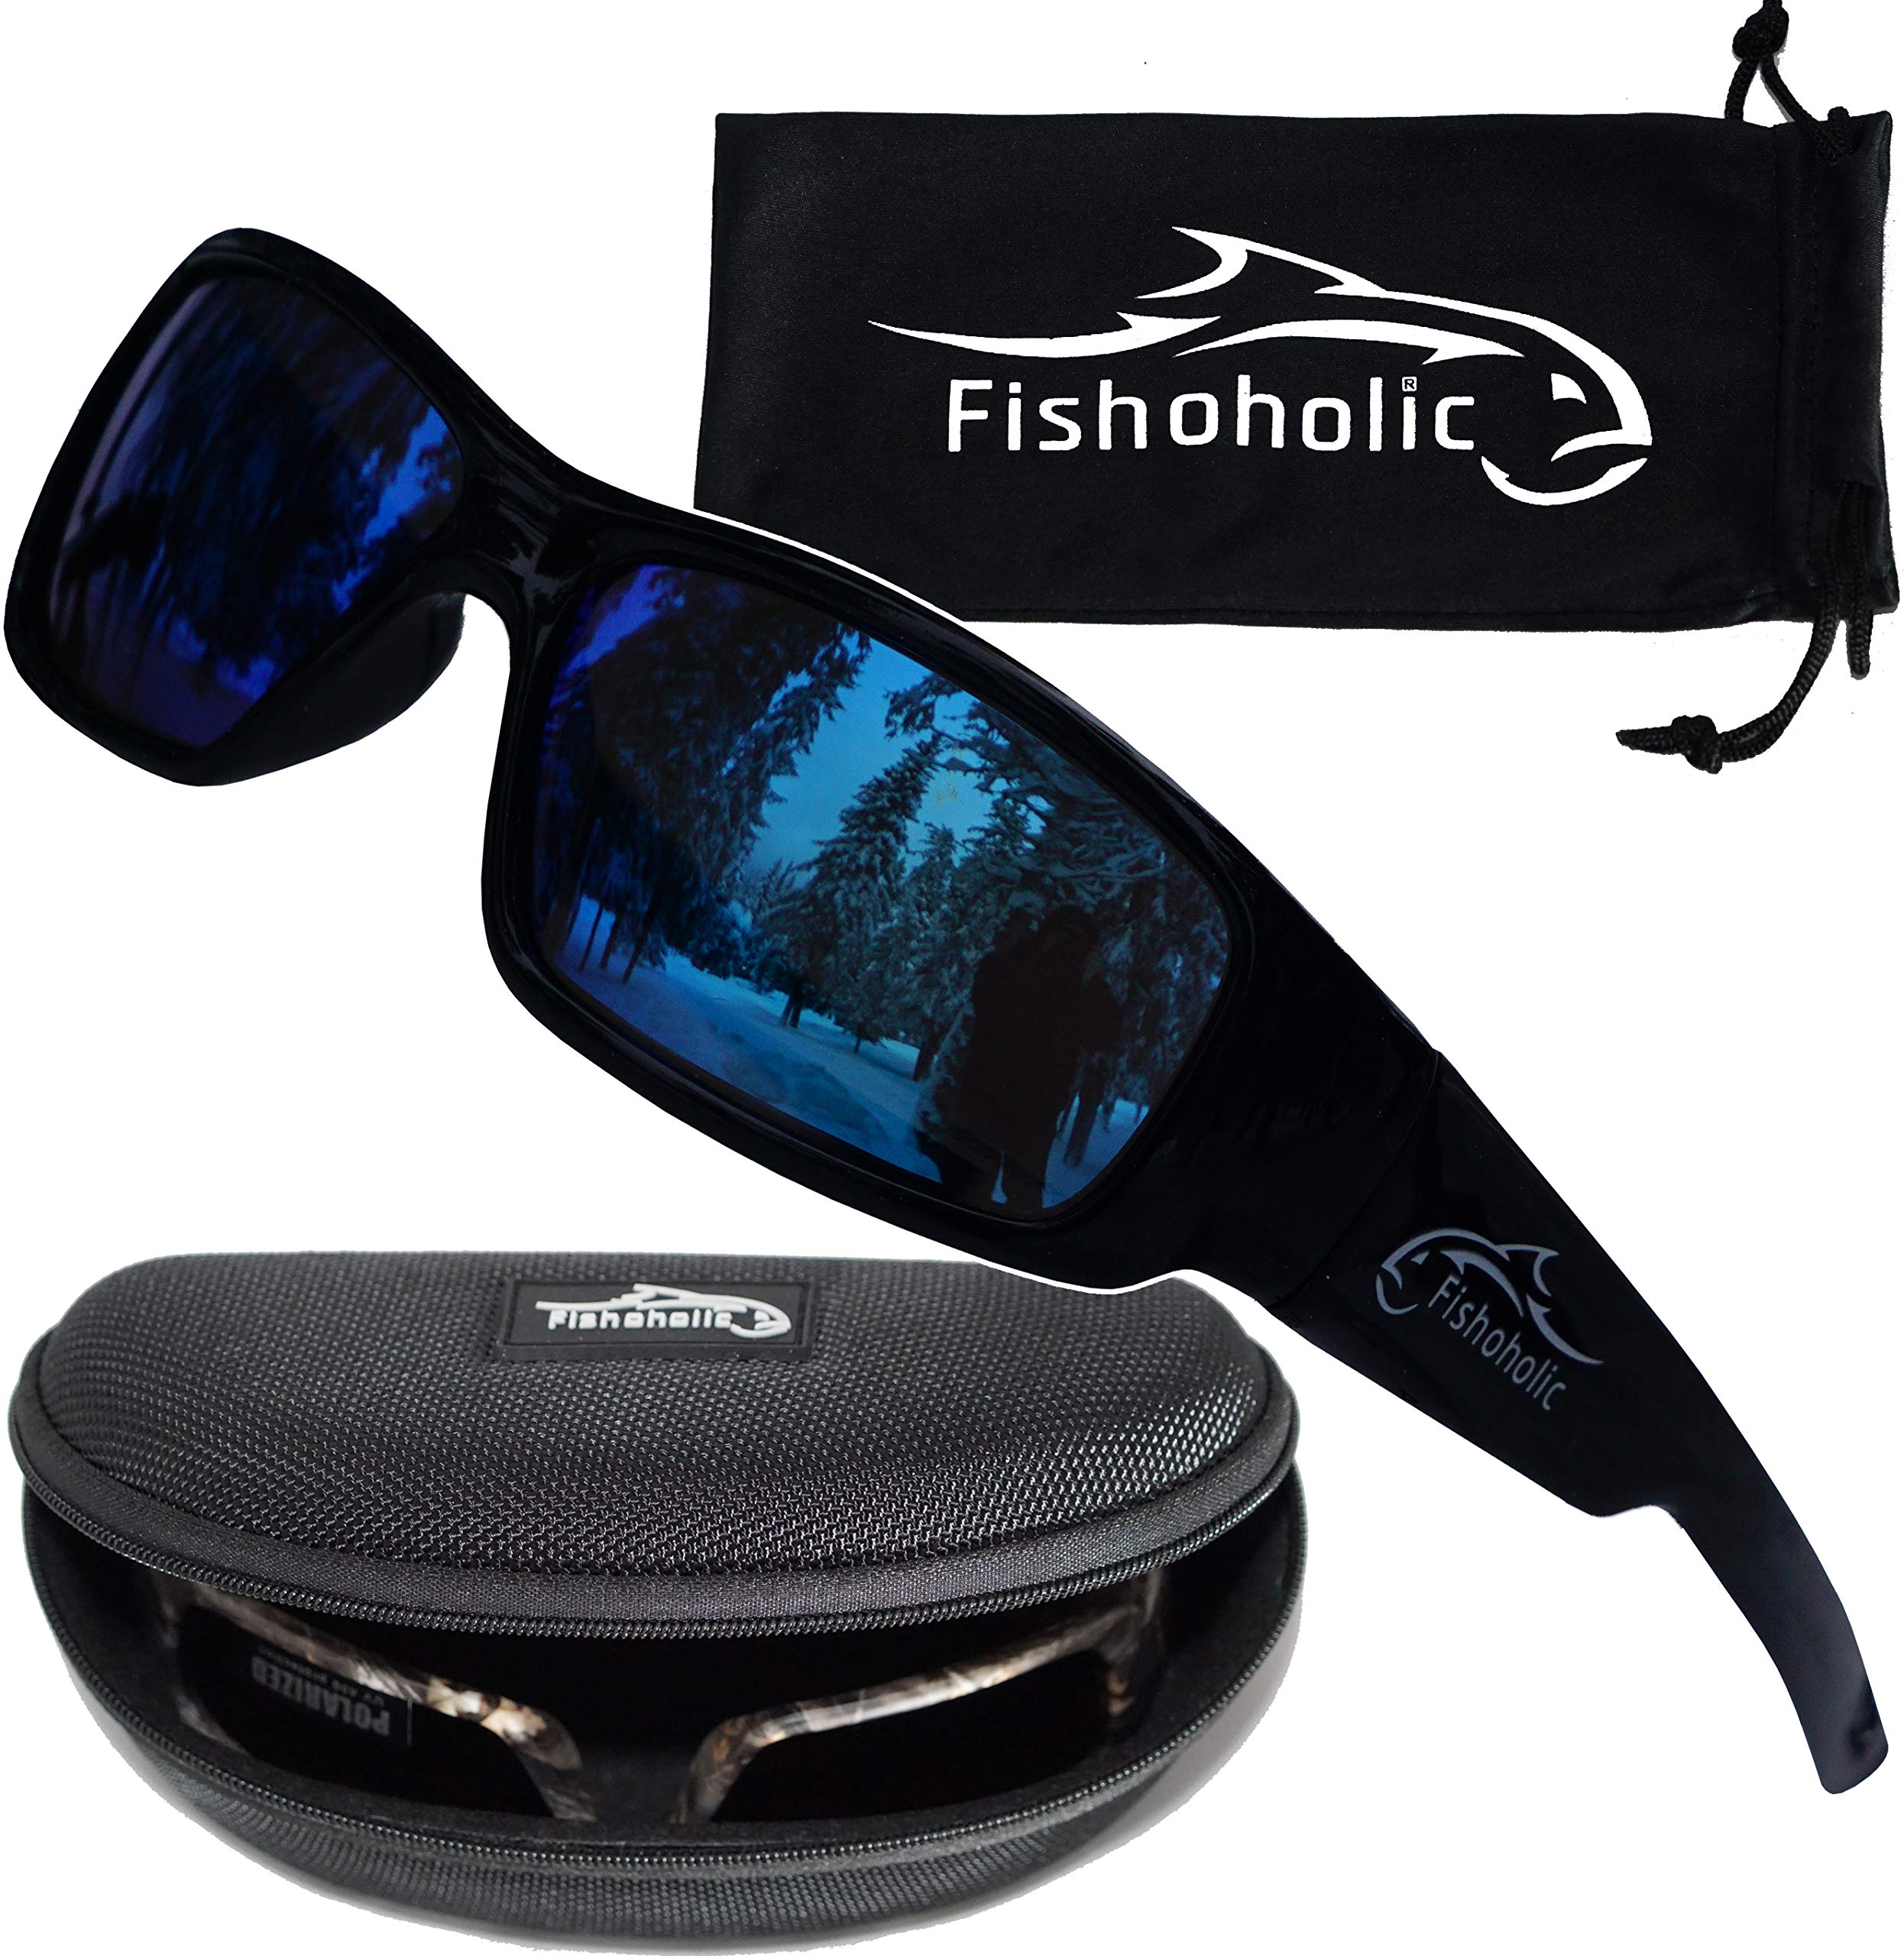 Fishoholic Polarized Sunglasses Protection Flyfishing